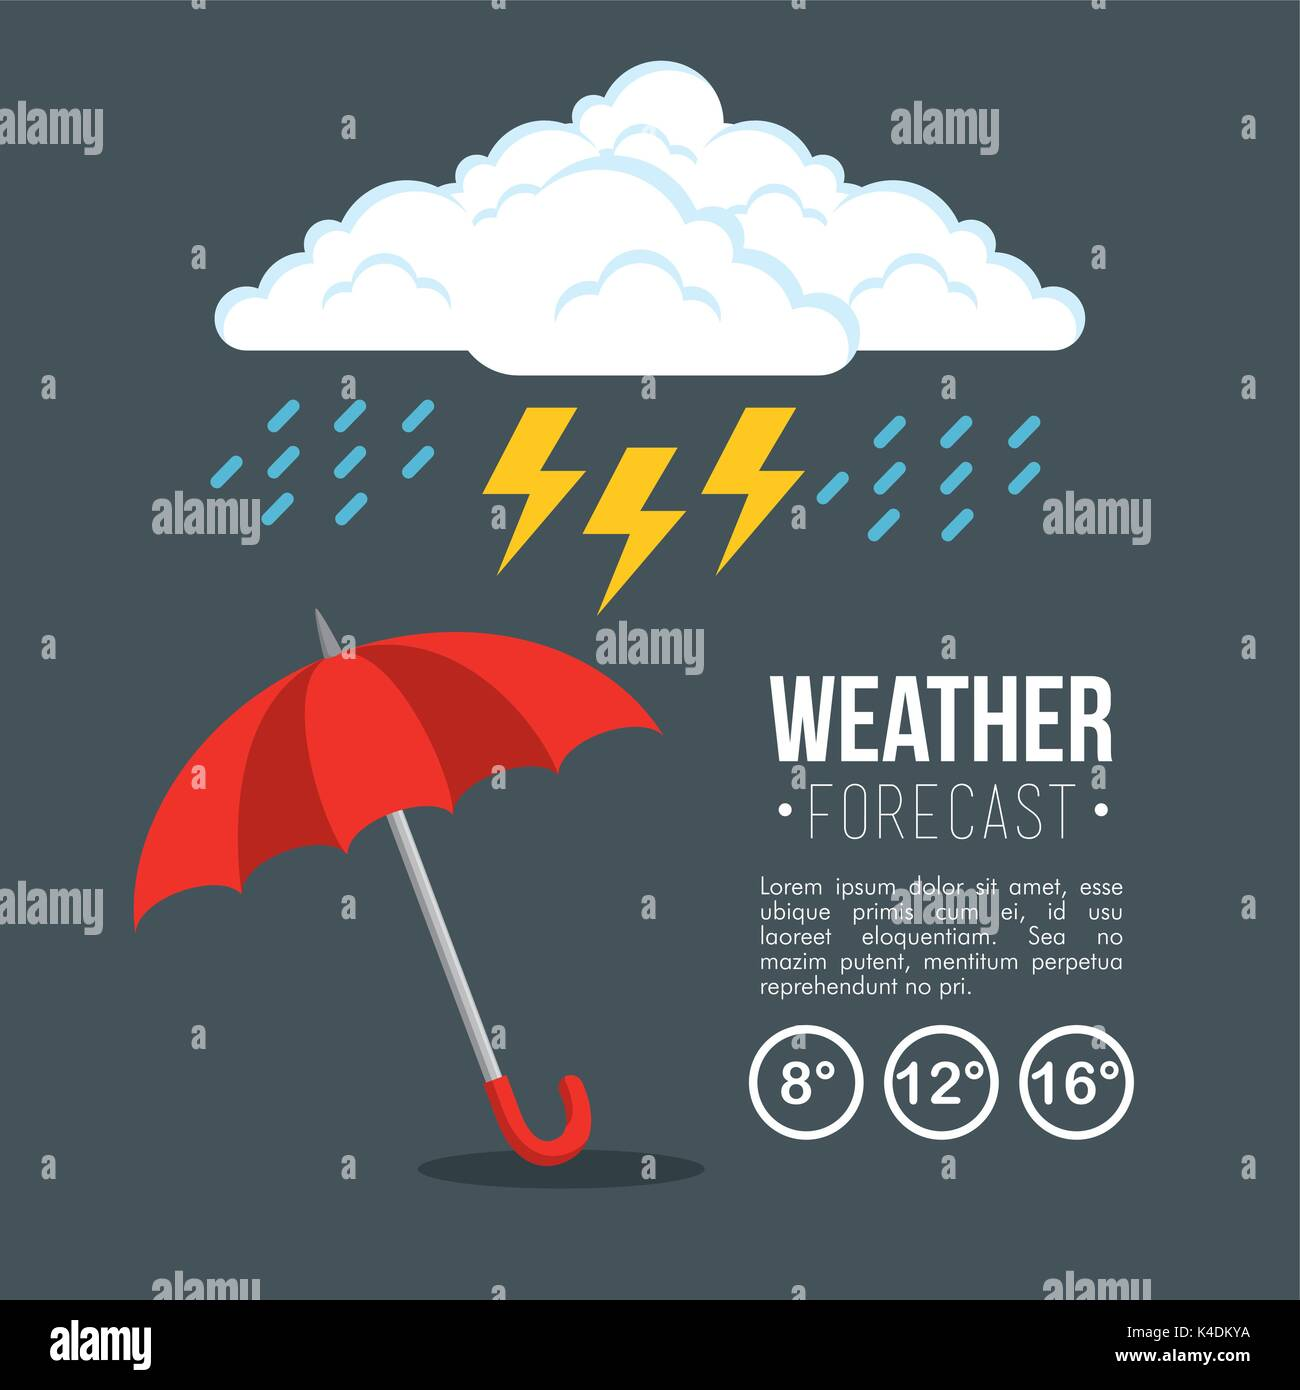 Weather Today At My Location Rainfall - US Weather News